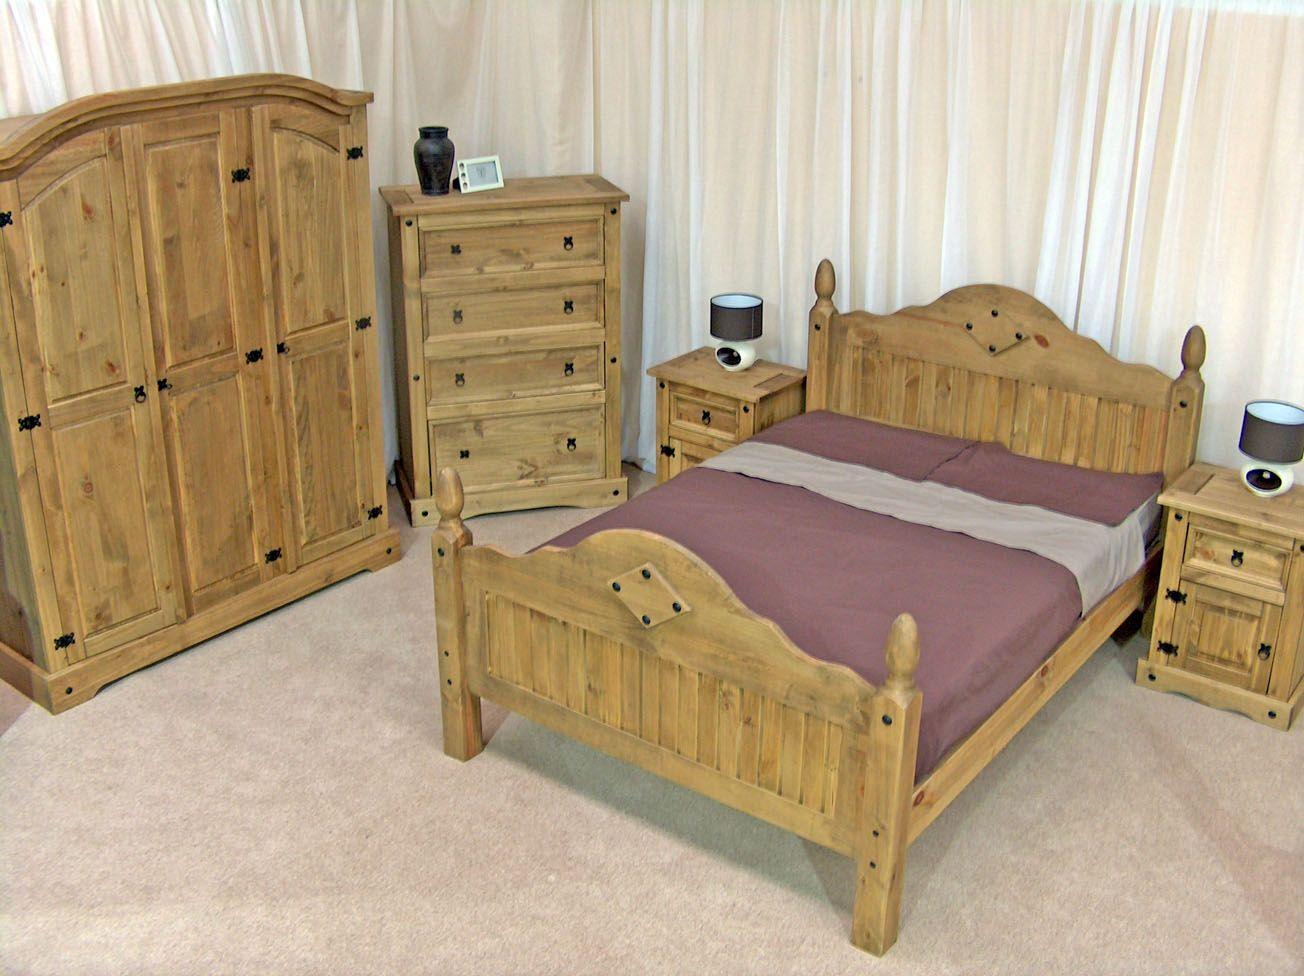 Mexican pine bedroom furniture wood is beautiful for Mexican furniture